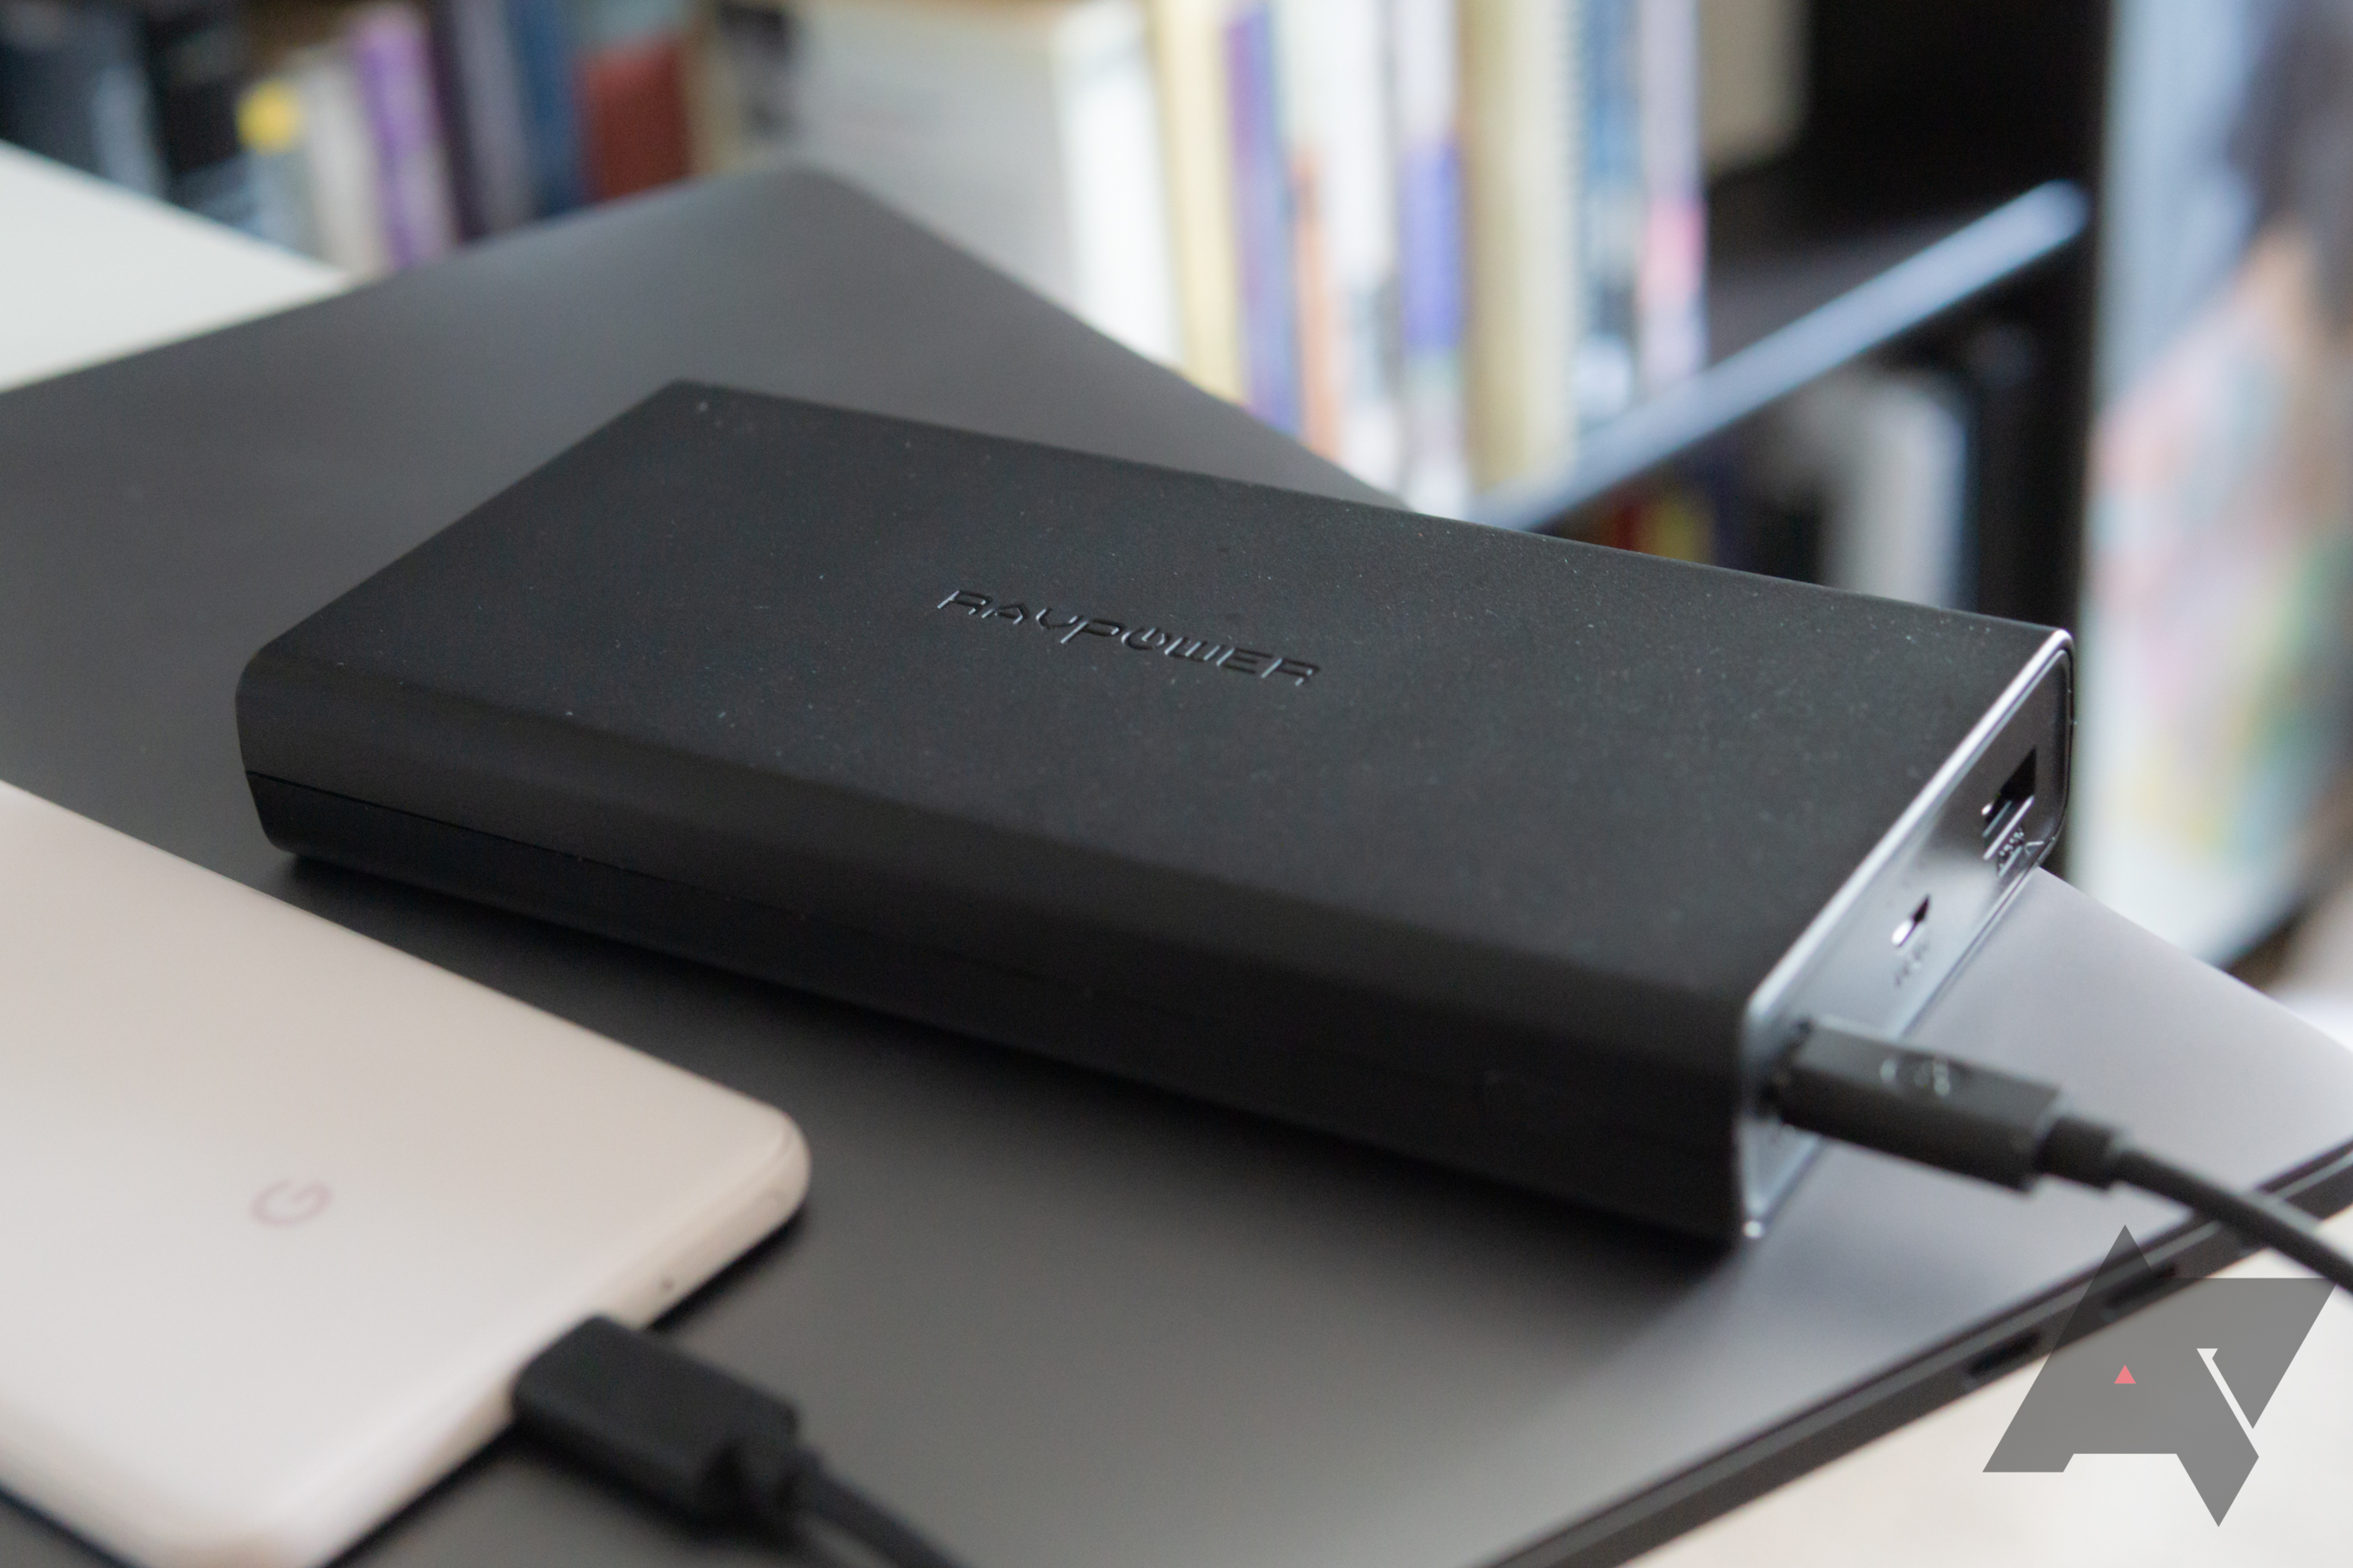 RAVPower 20,100mAh USB-C 45W power bank review: It has issues